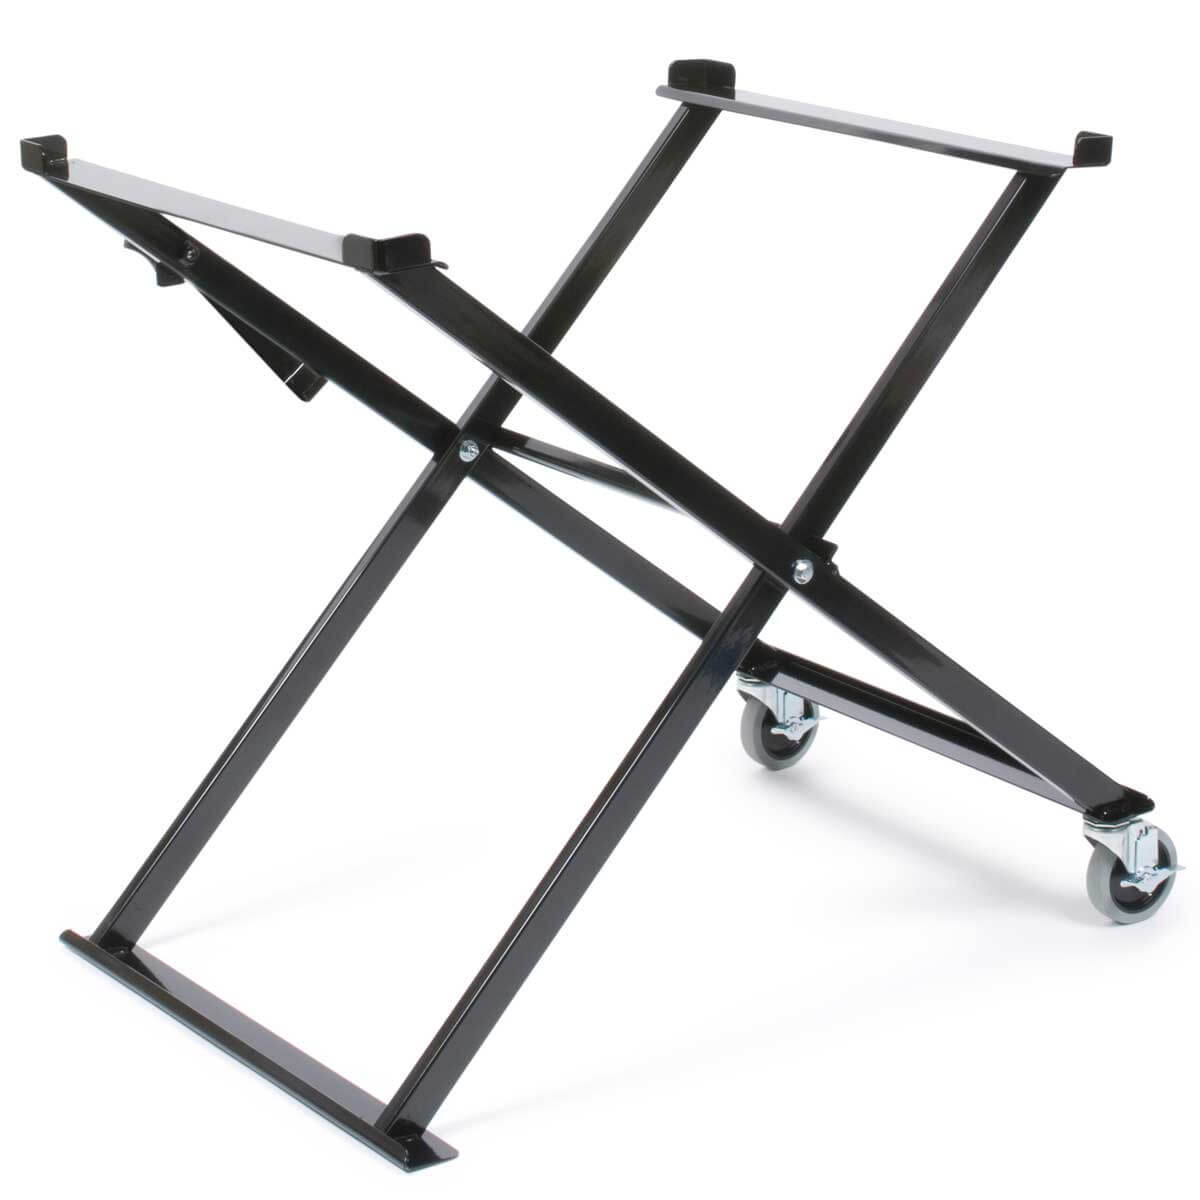 MK tile saw stand folding scissor stand